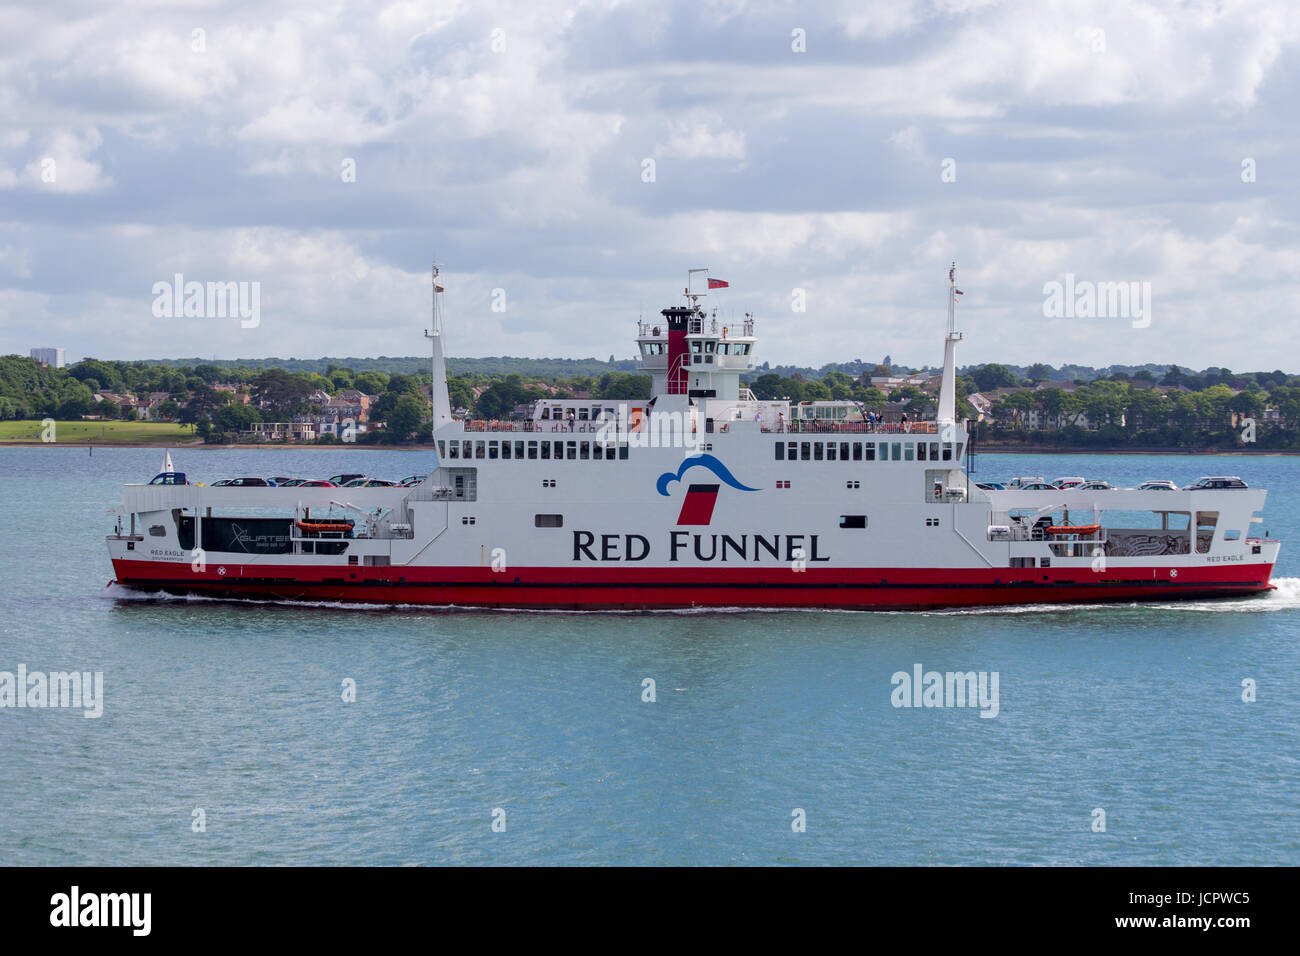 Red Funnel Red Eagle roll on roll off car ferry from the Isle of Wight going towards Southampton - Stock Image